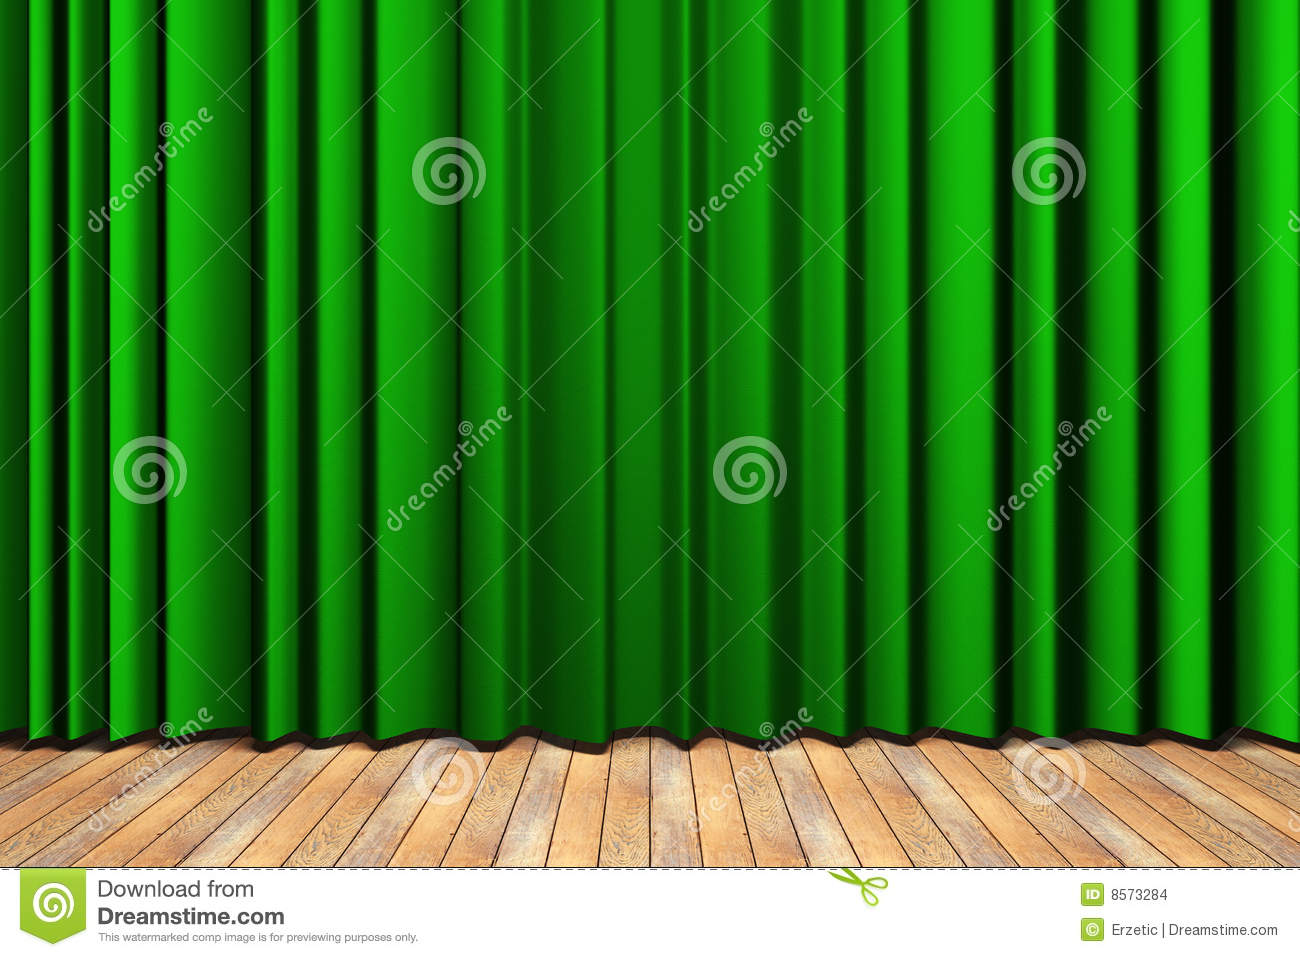 Green stage curtains - More